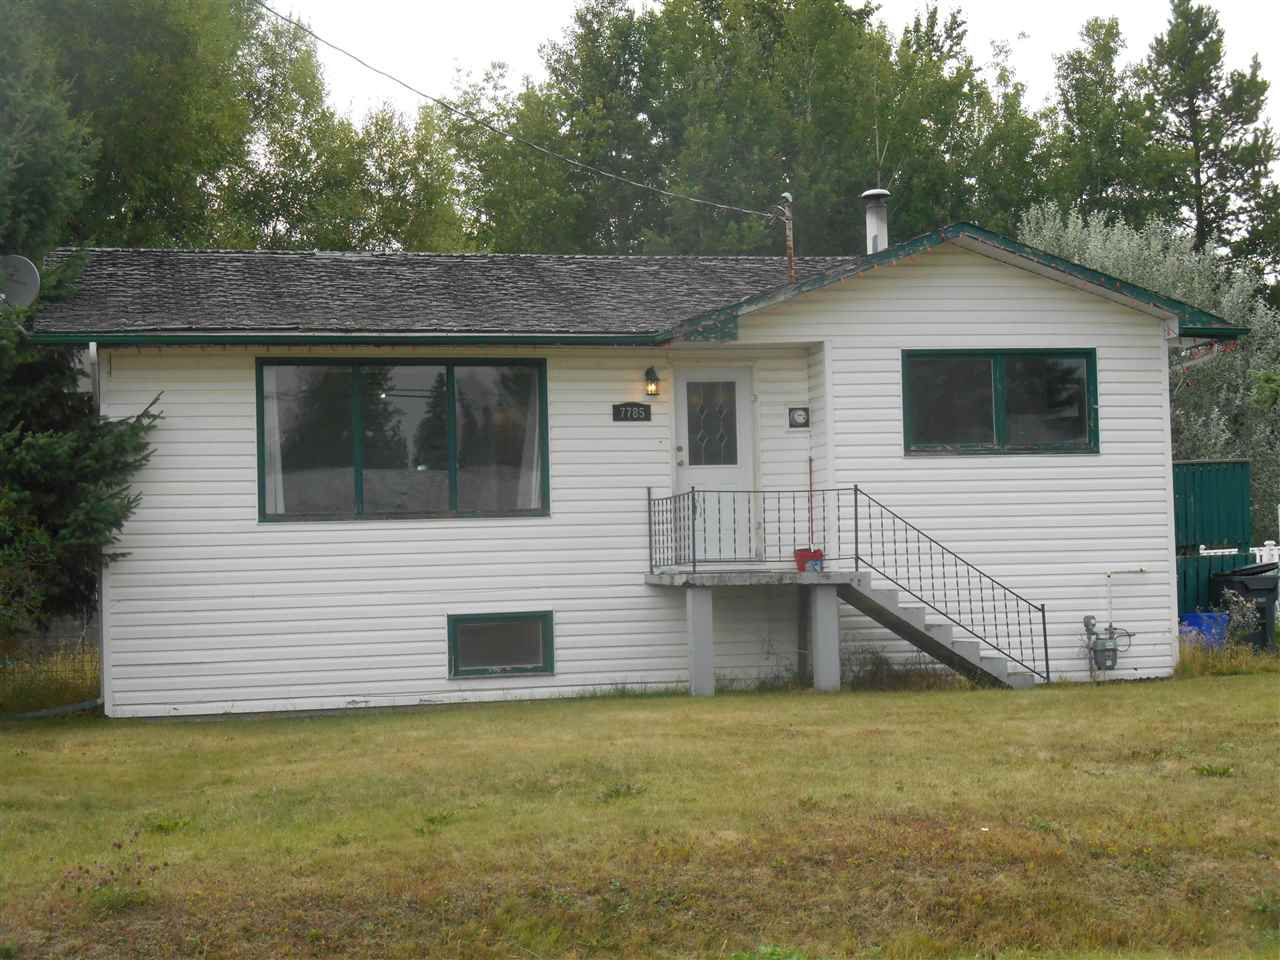 """Main Photo: 7785 DOW Road in Prince George: Parkridge House for sale in """"PARKRDIGE"""" (PG City South (Zone 74))  : MLS®# R2199713"""